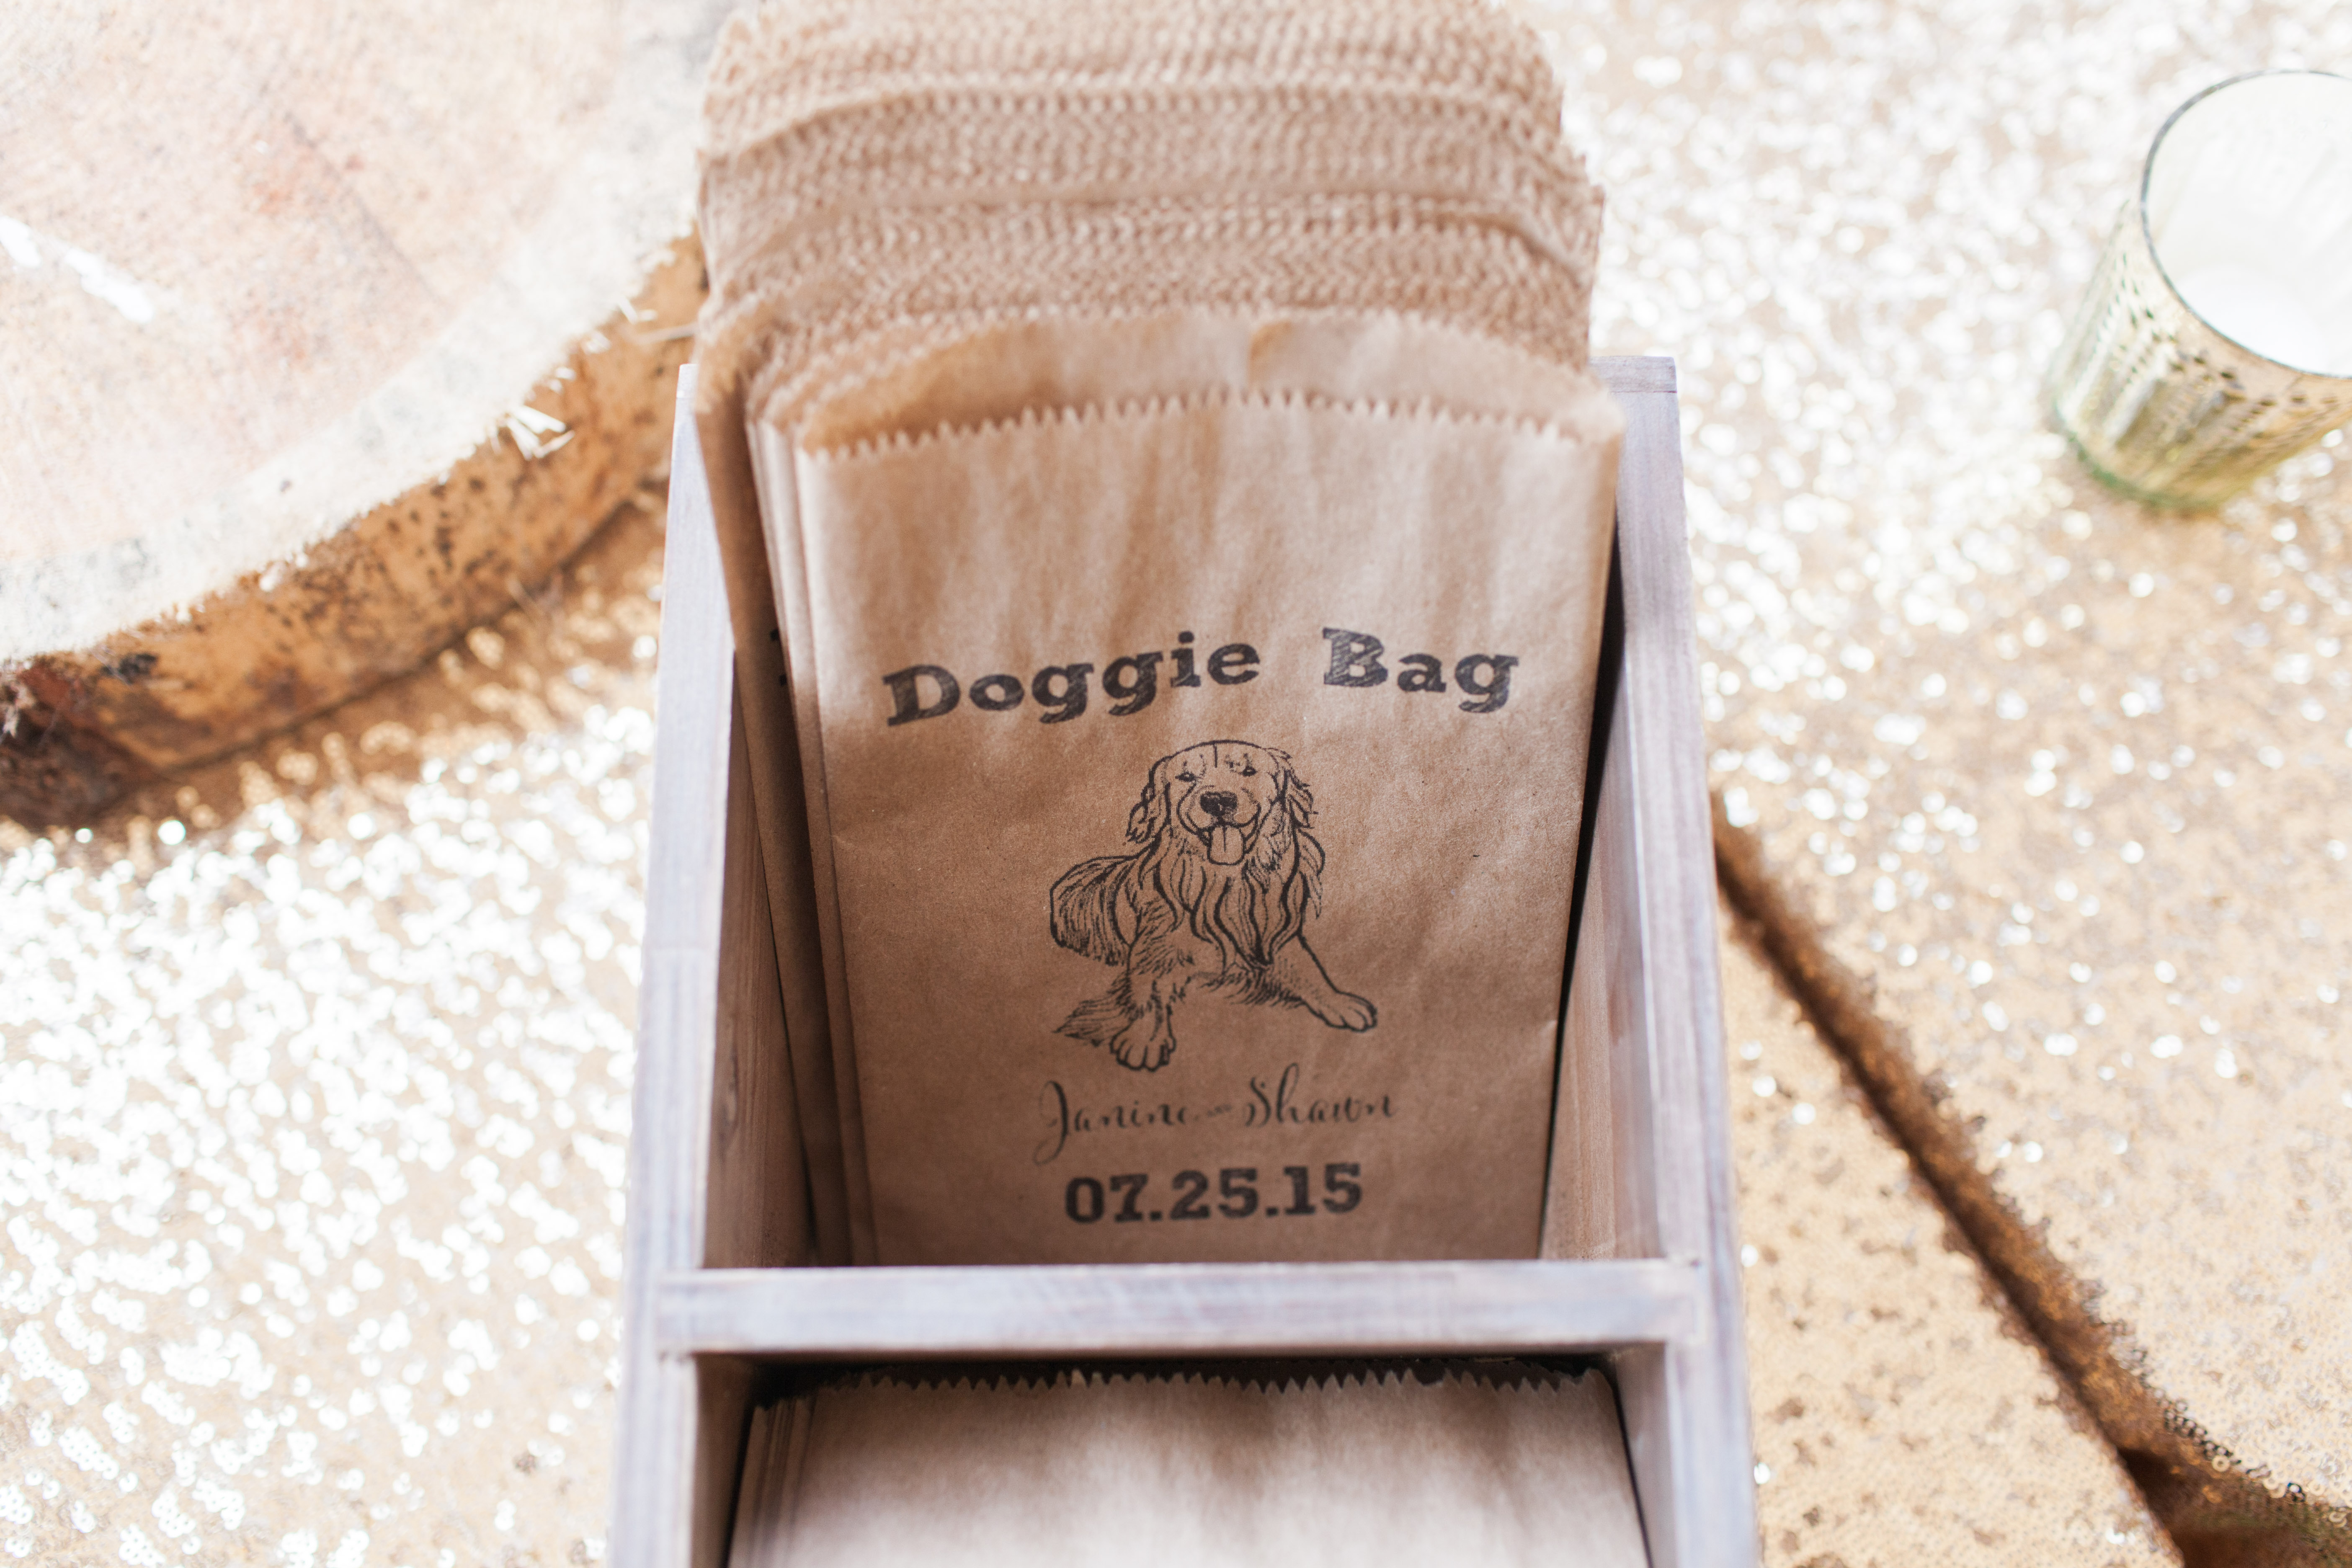 doggie bag with dog illustration